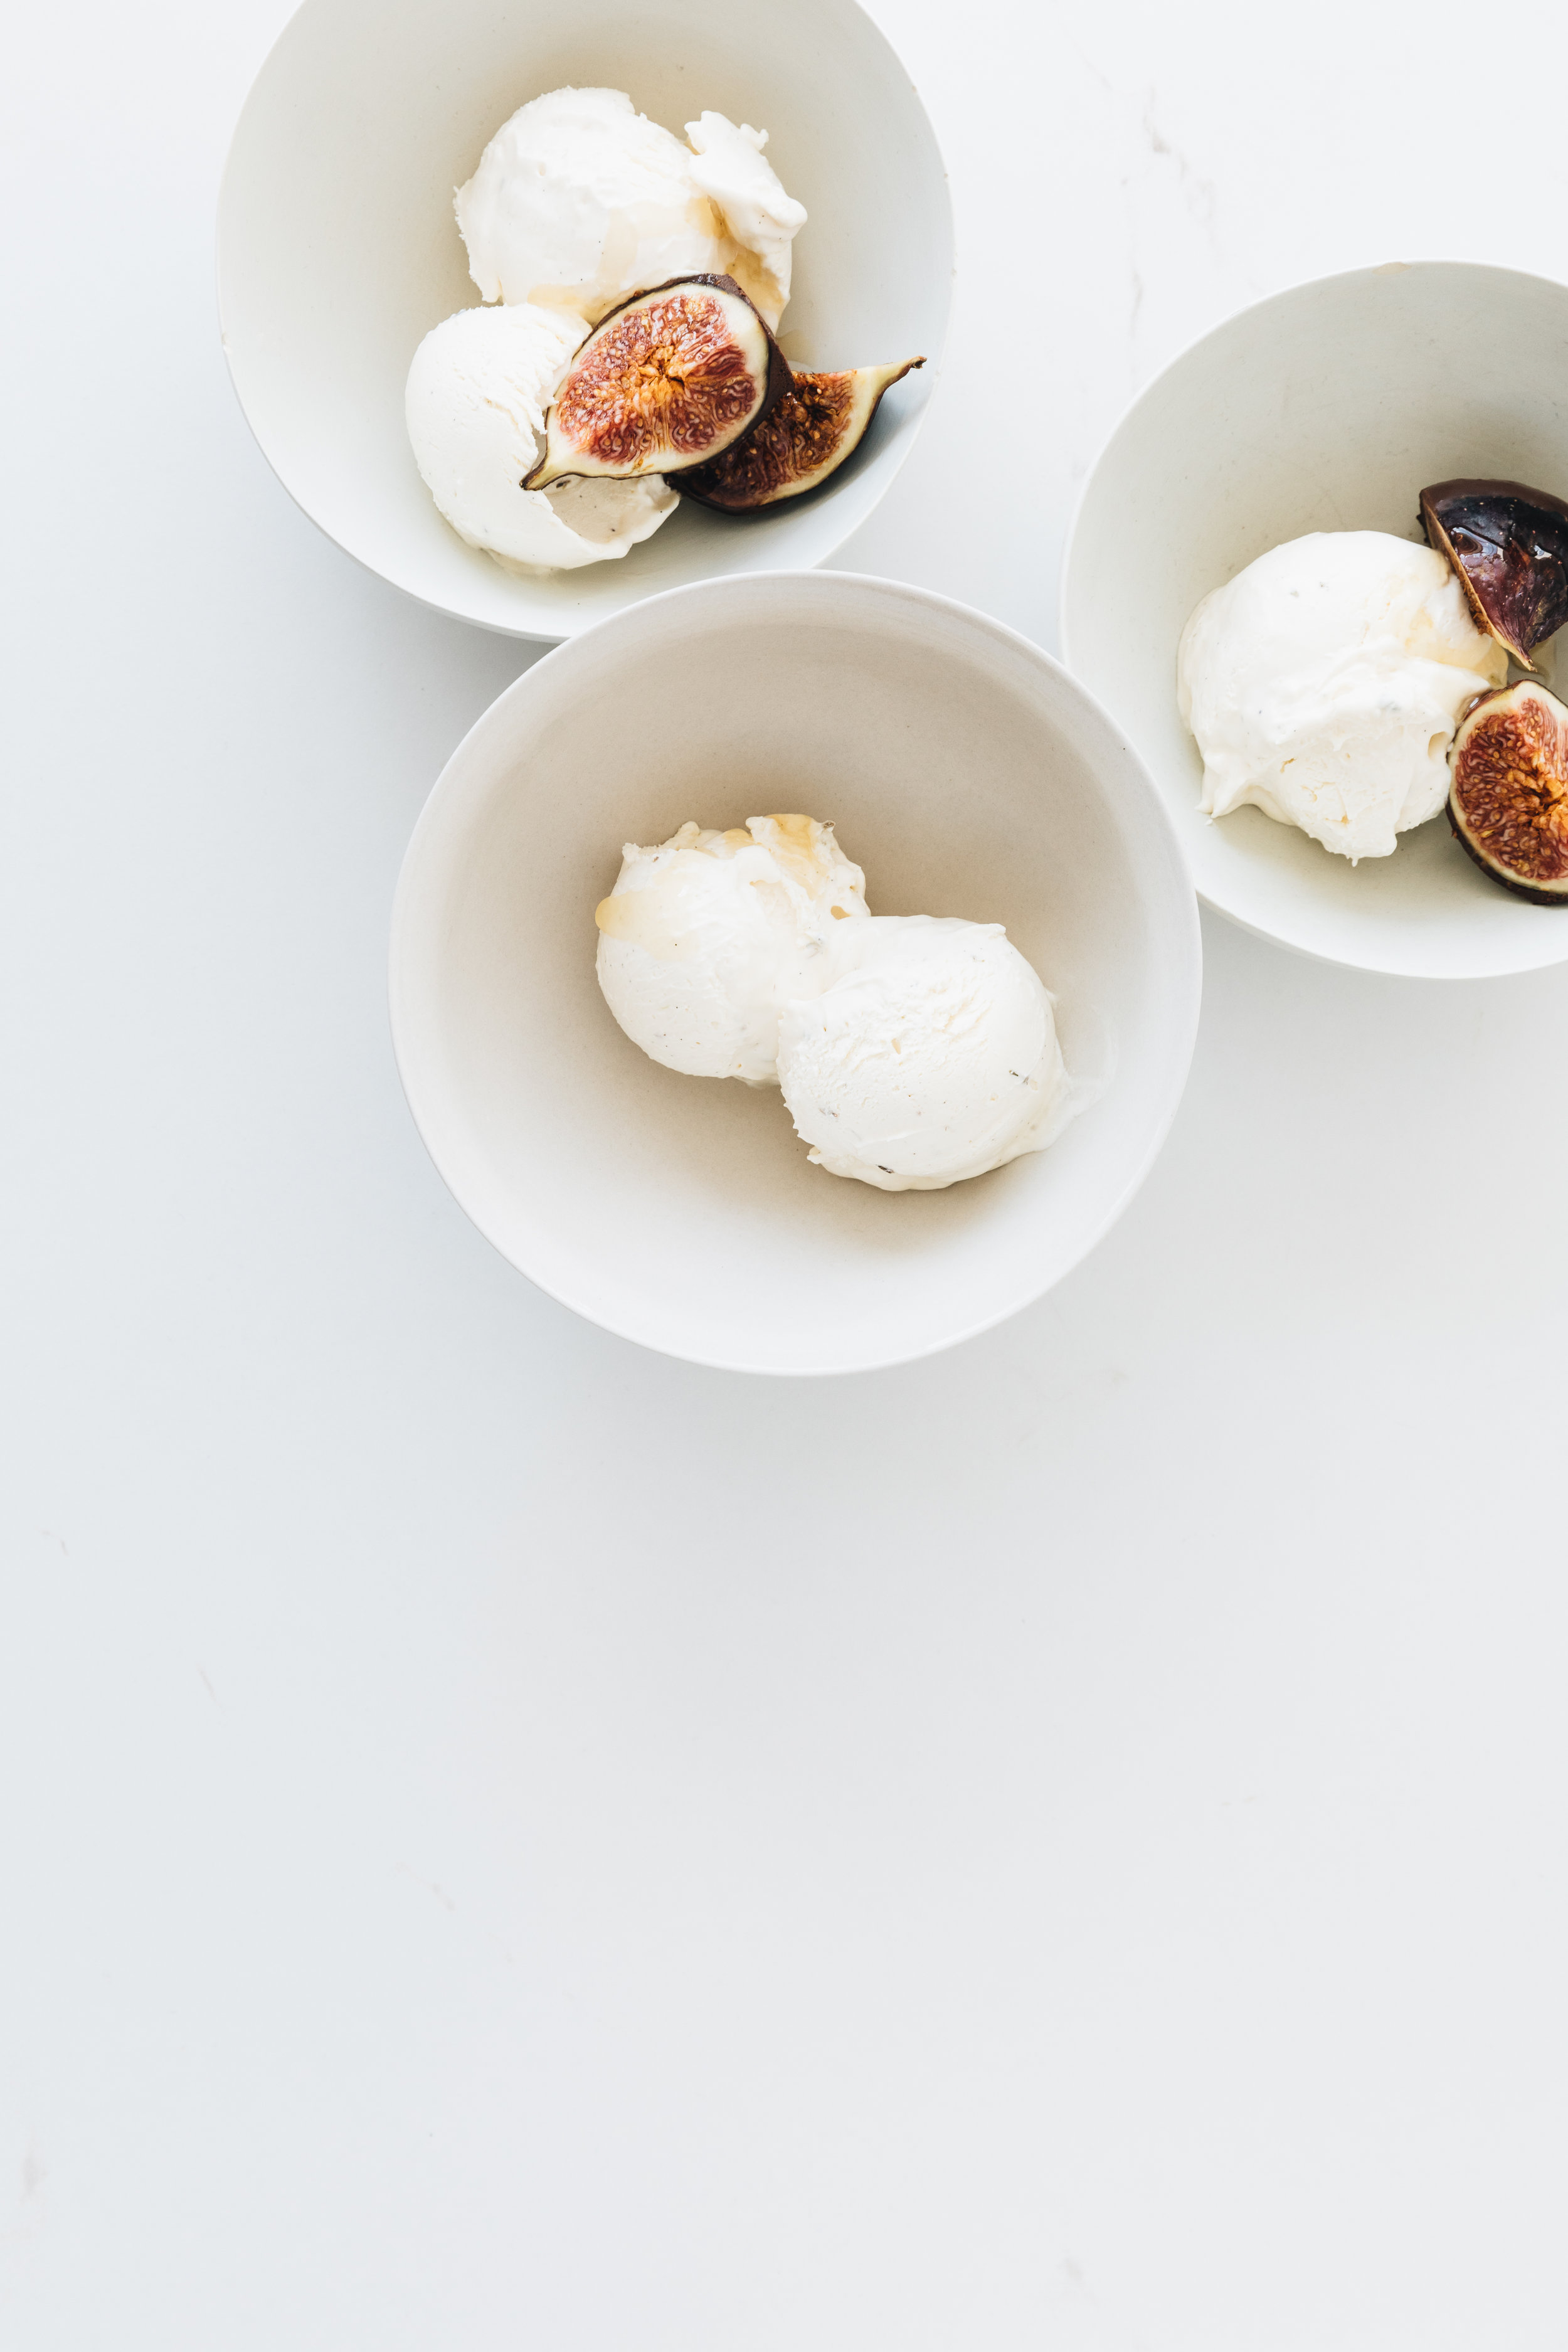 Sweet Honey & Lavender Salt Ice Cream With Chocolate Dipped Figs